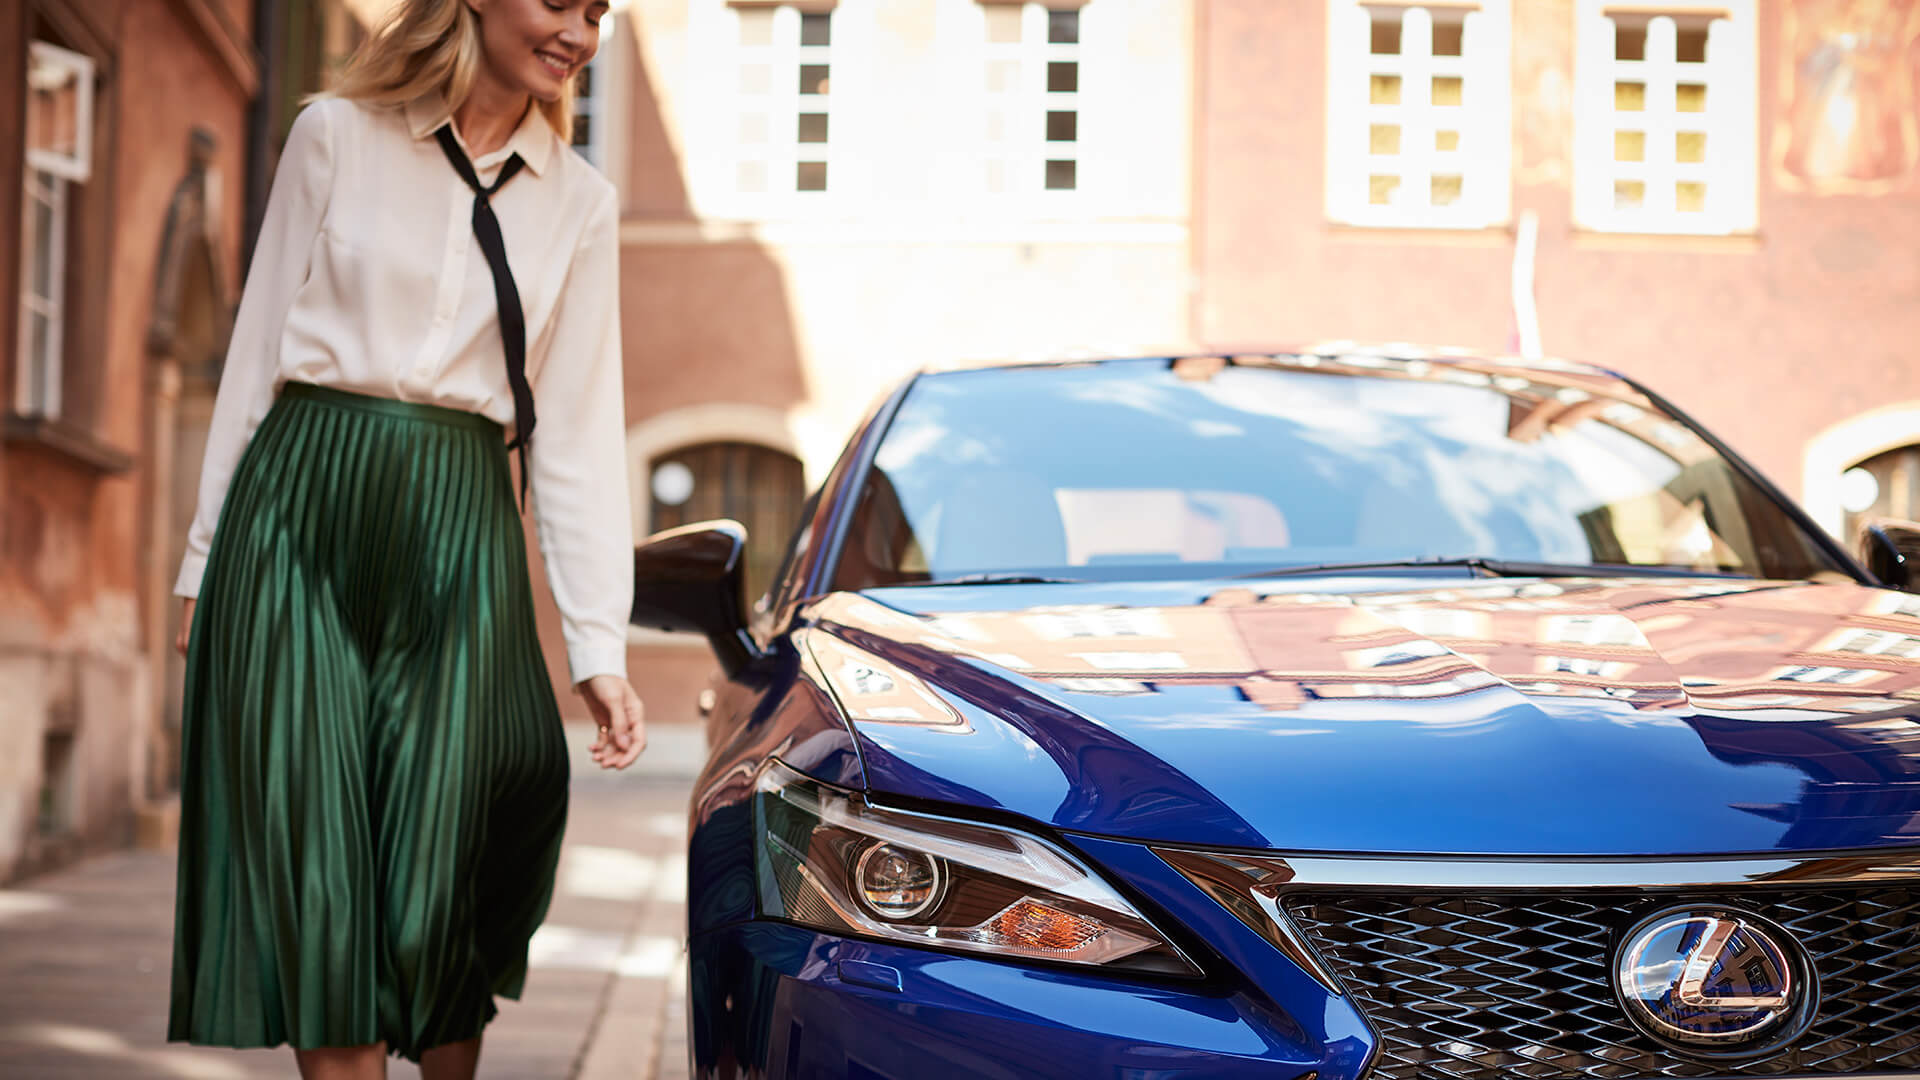 2018 lexus ct 200h my18 gallery 042 lifestyle